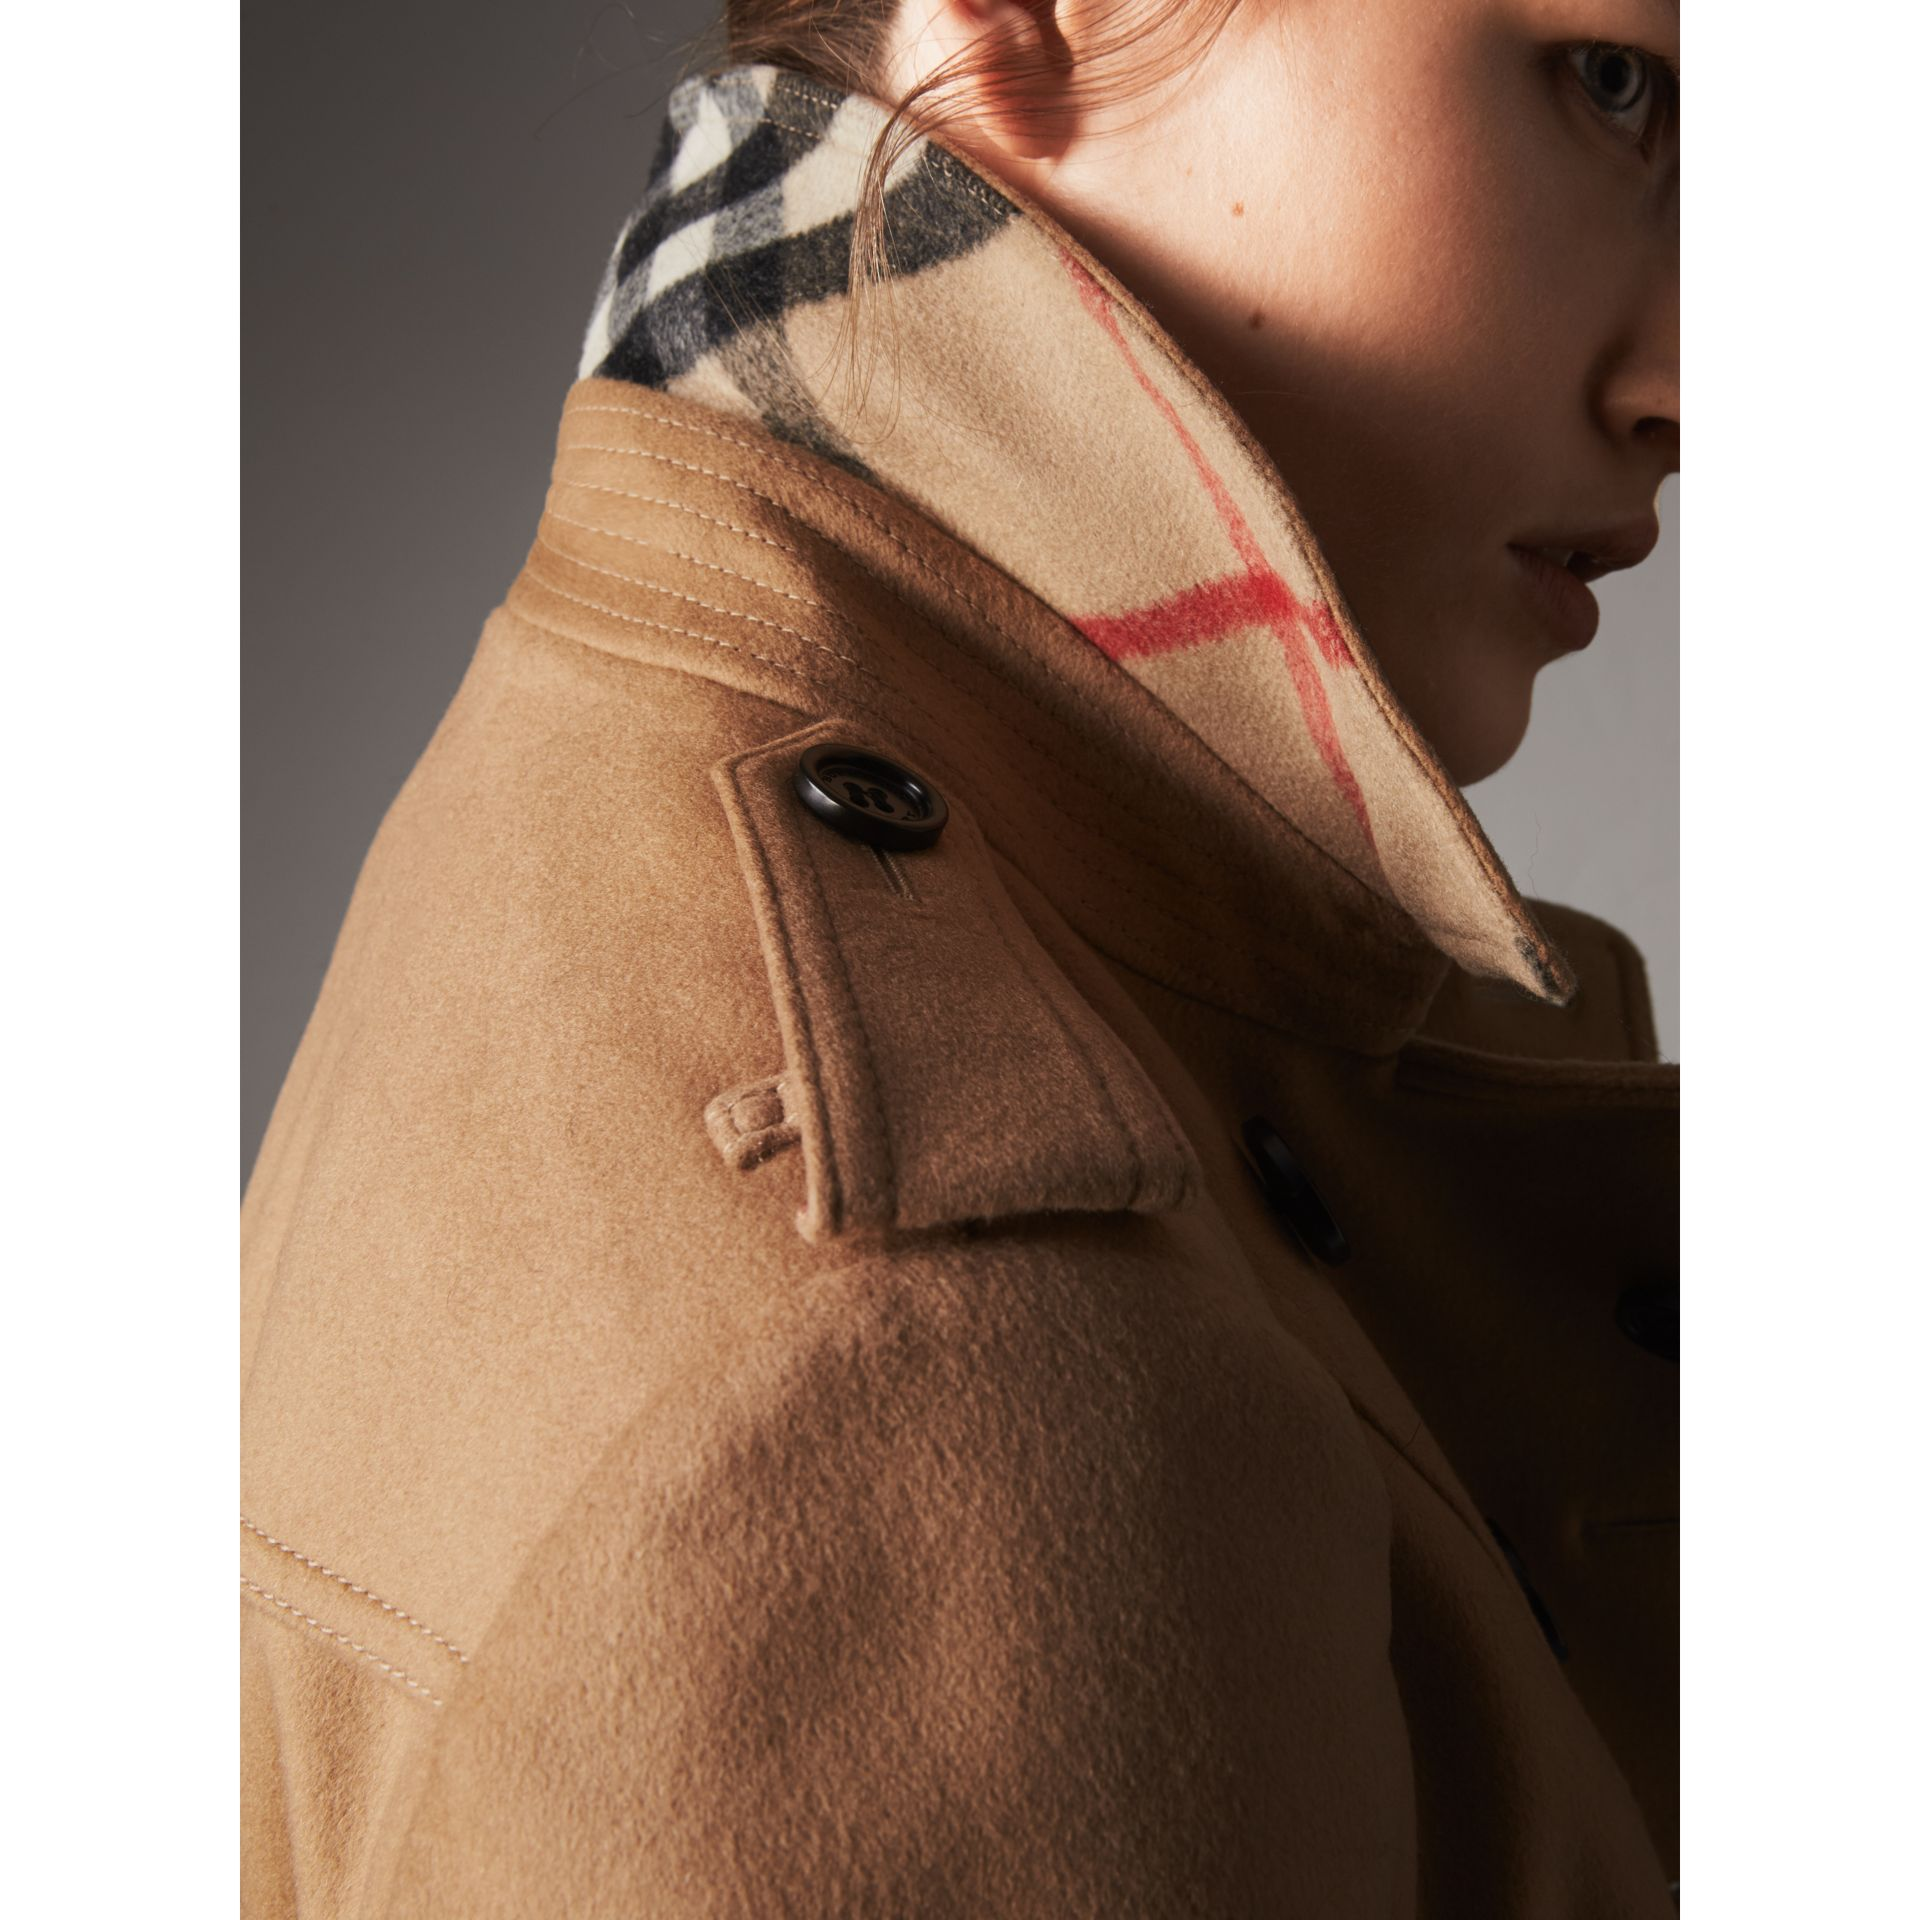 Wool Cashmere Trench Coat with Fur Collar in Camel - Women | Burberry - gallery image 4